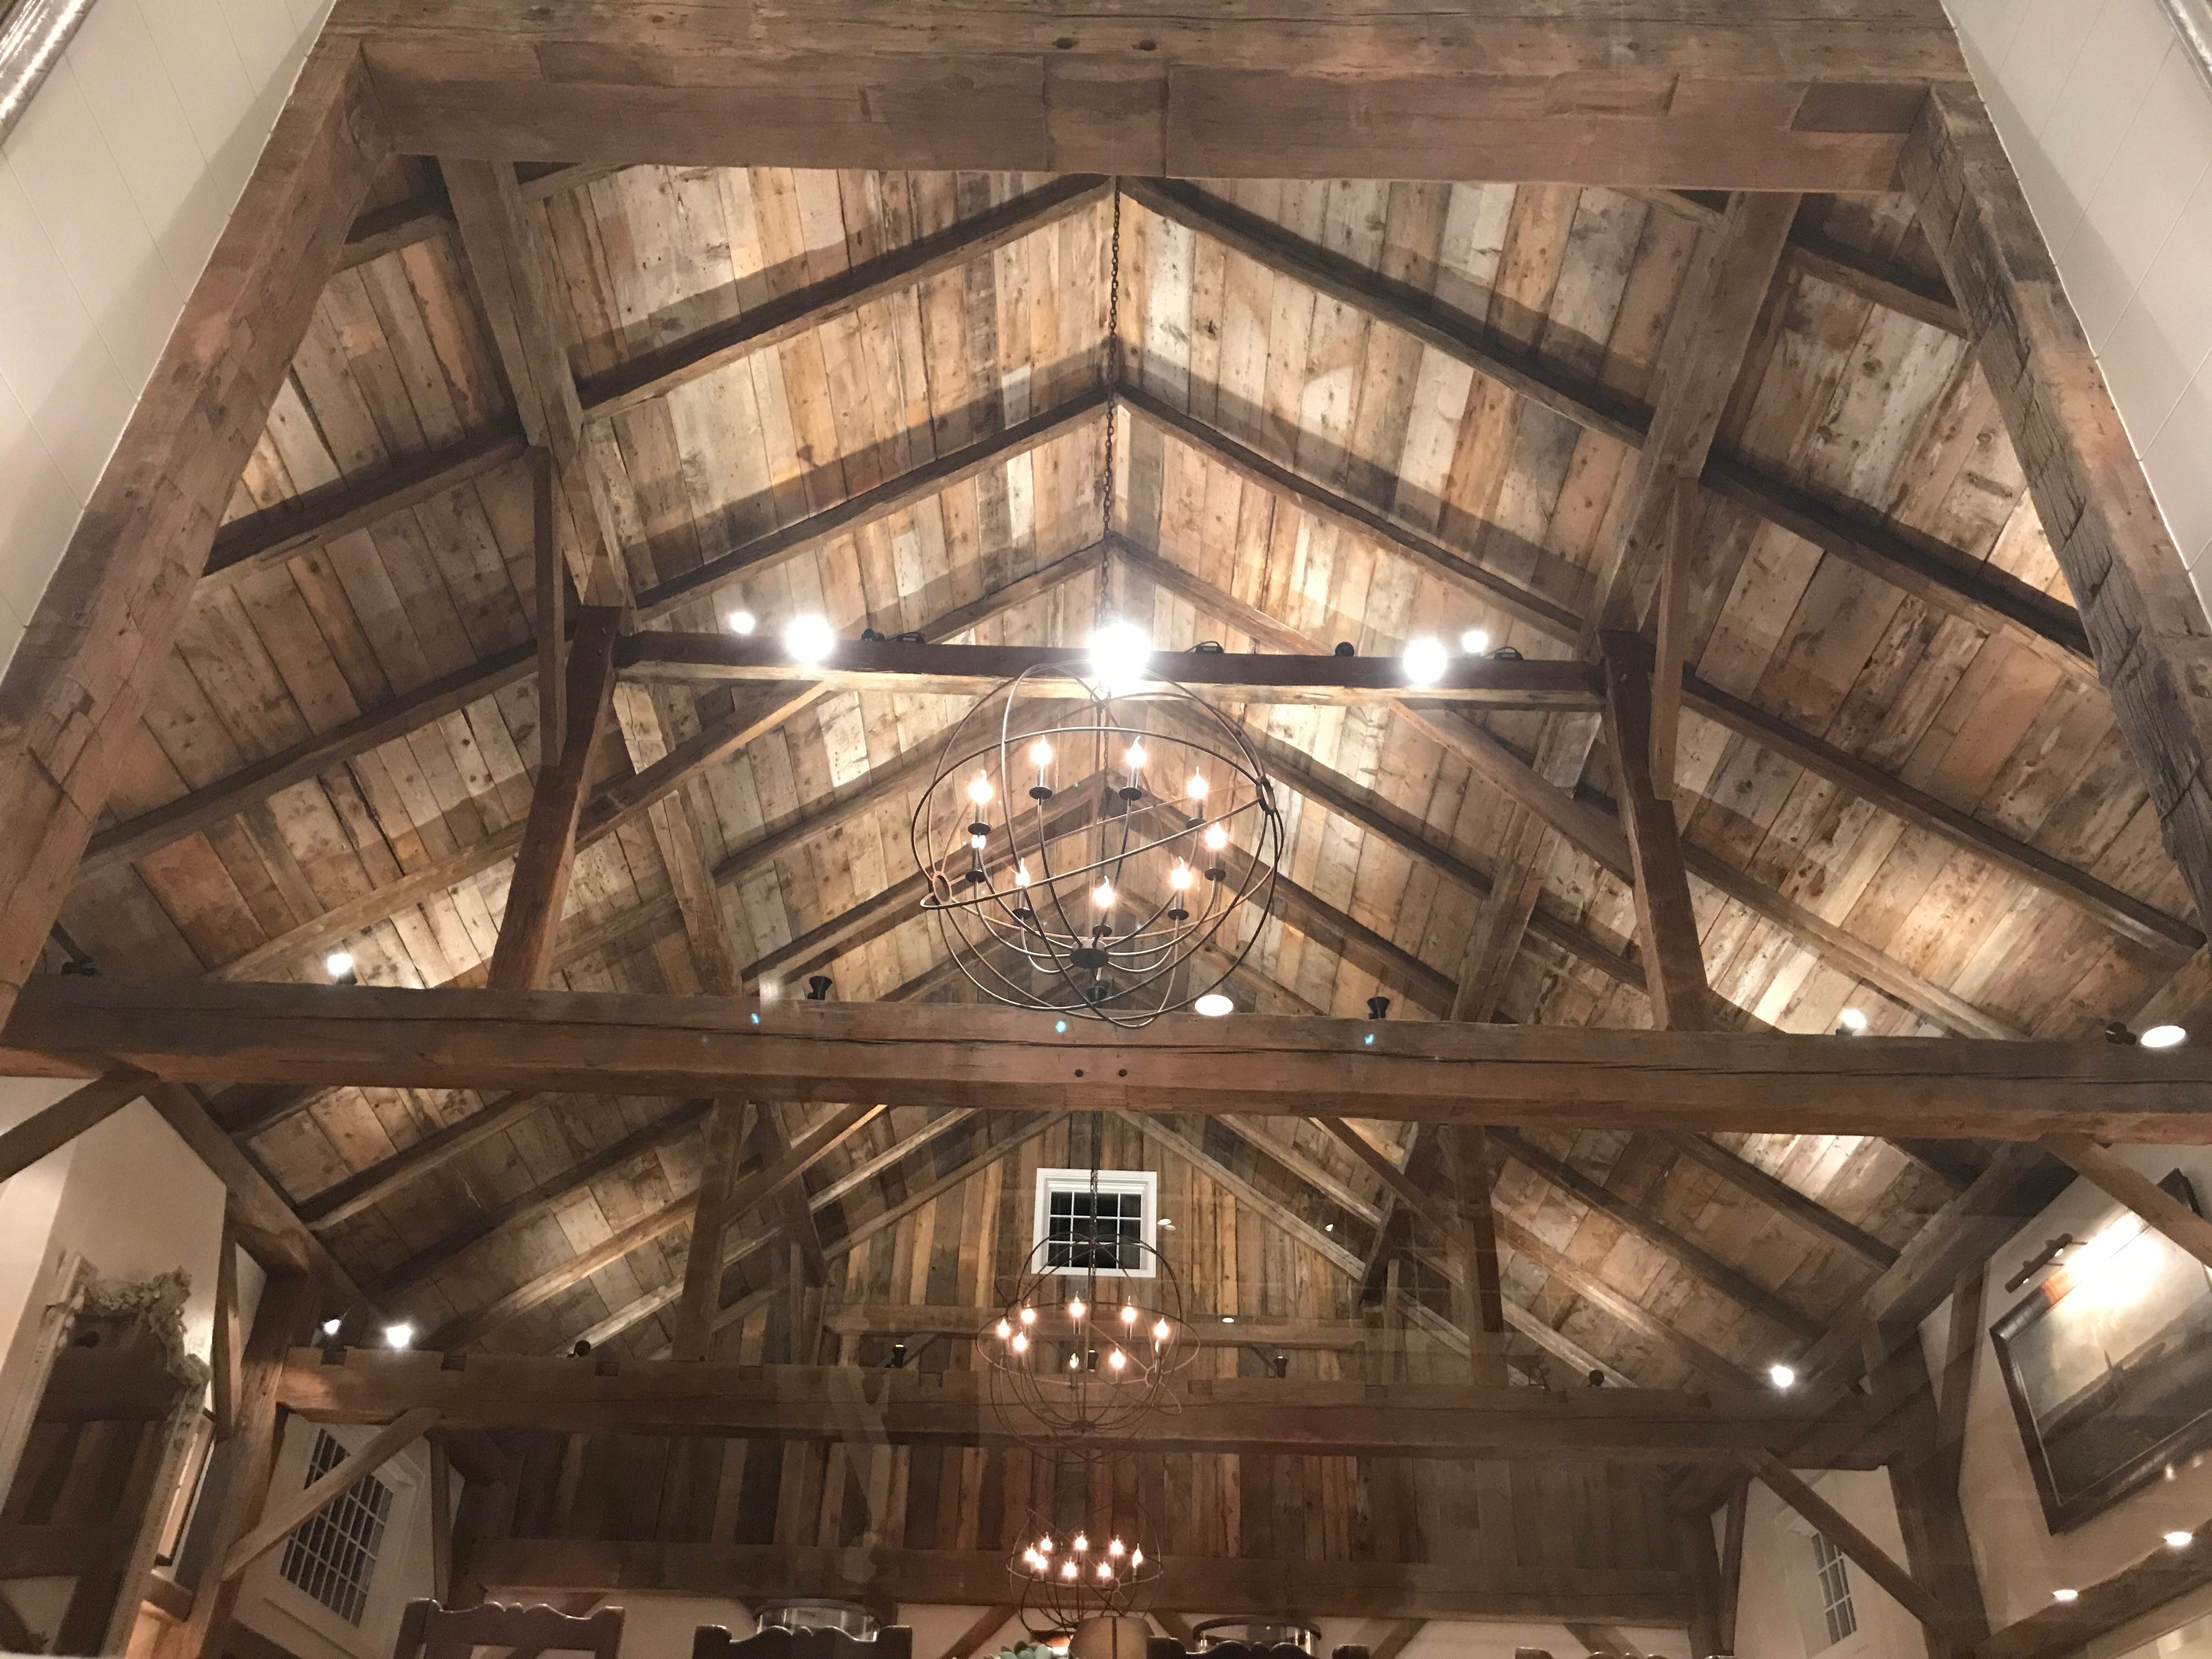 Cathedral ceiling made from reclaimed timbers in a residence in Pemaquid, Maine, sourced from Rousseau Reclaimed Lumber & Flooring